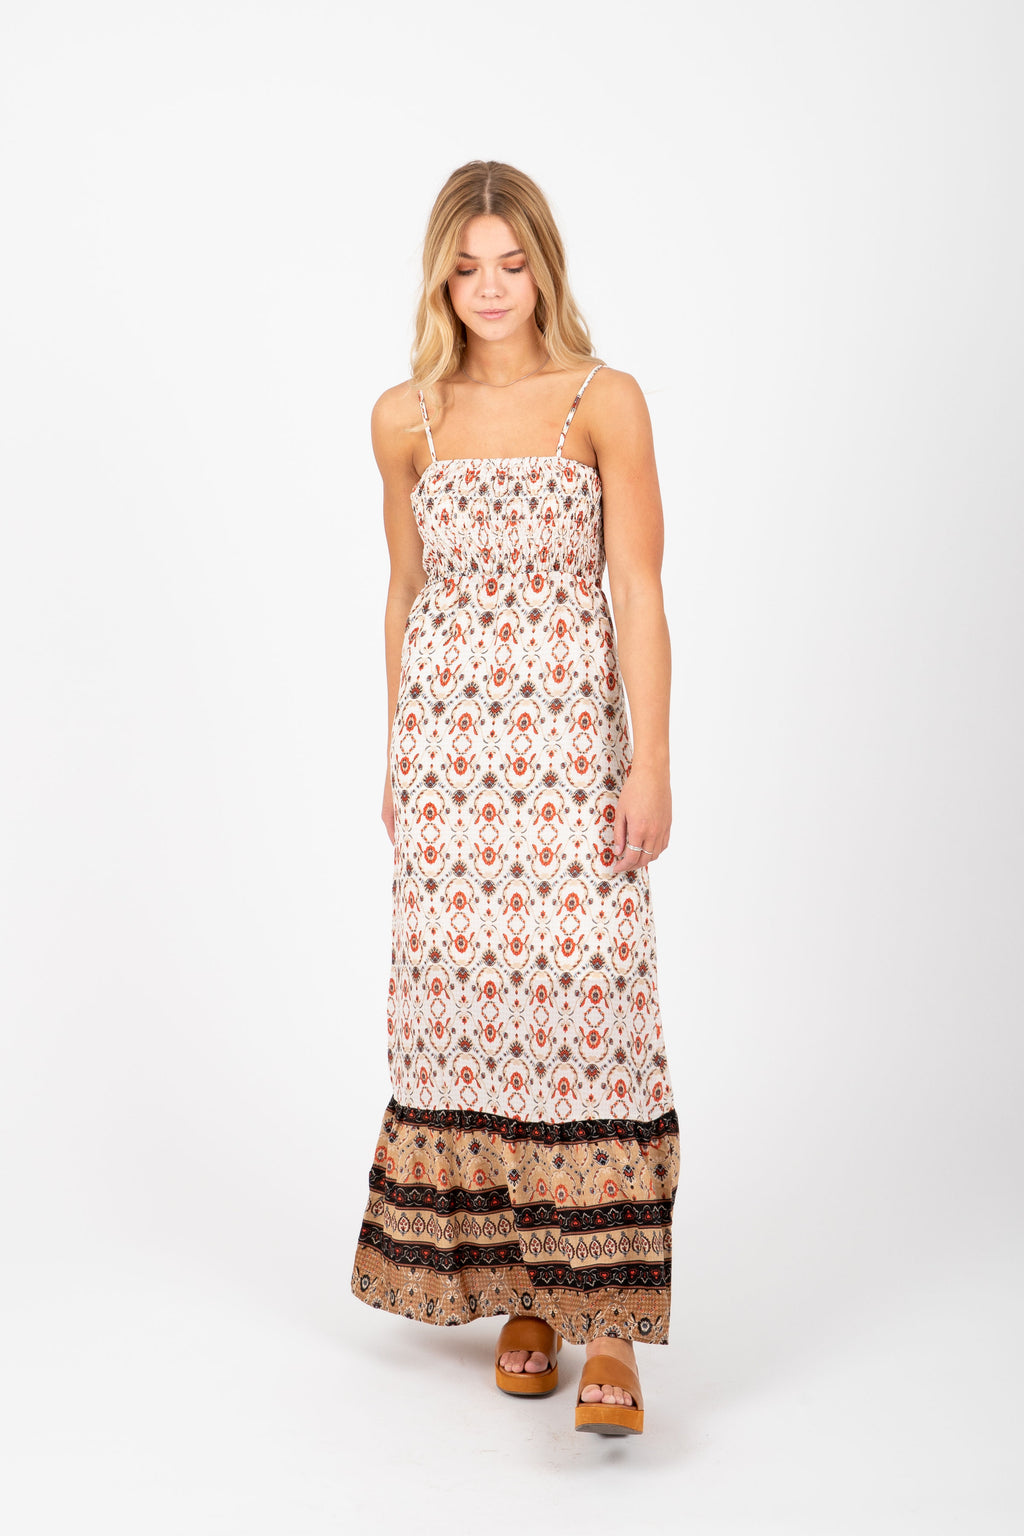 The Beatrice Patterned Tank Maxi Dress in Ivory